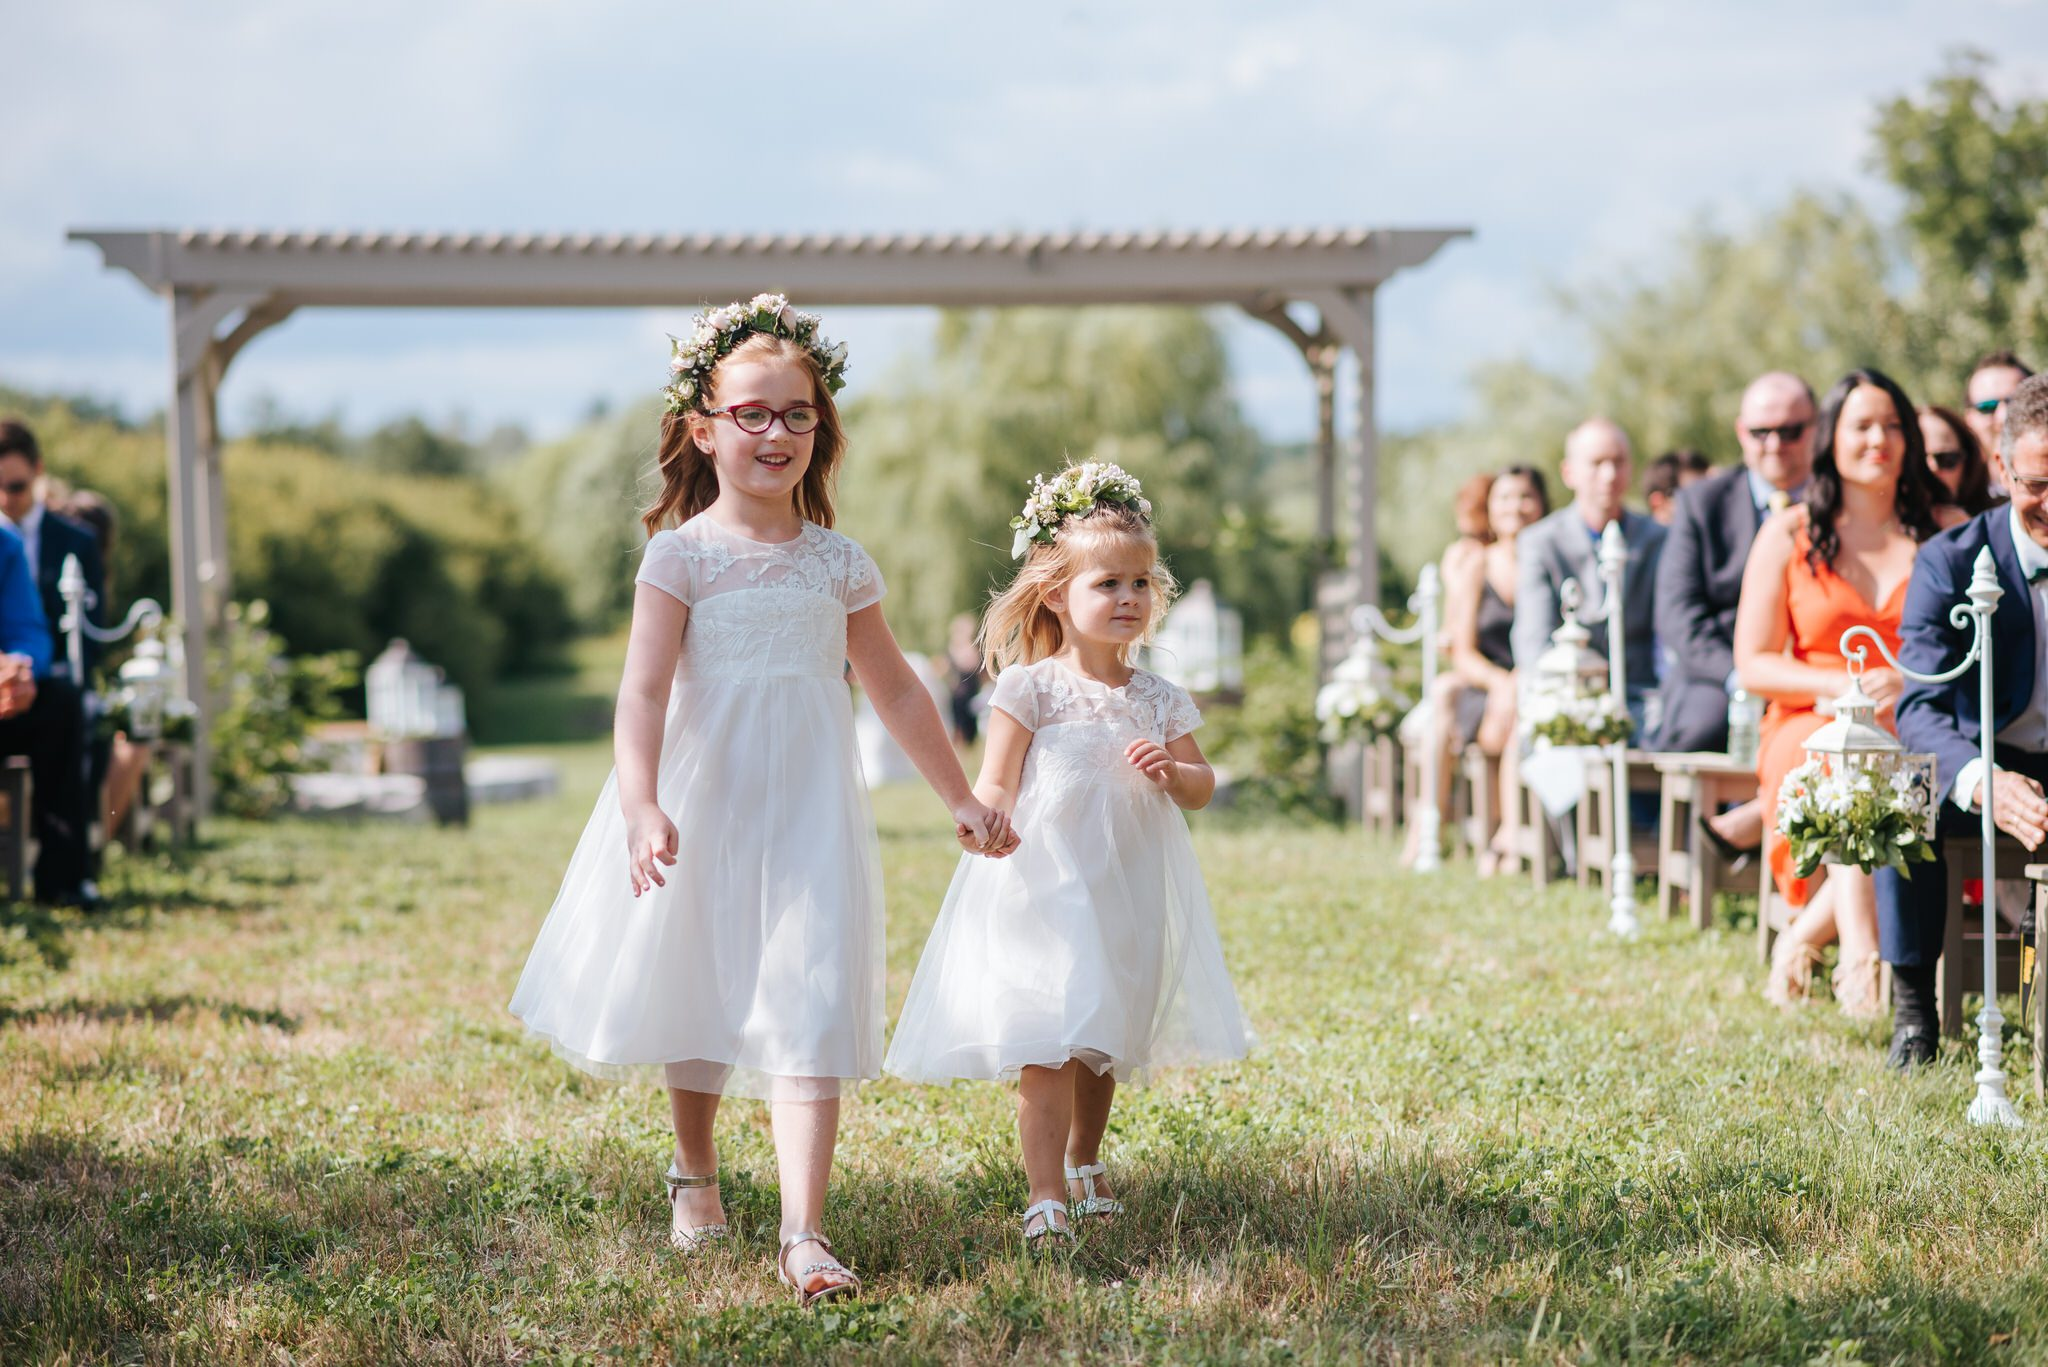 Bloomfield Gardens Wedding - flower girls walk the aisle